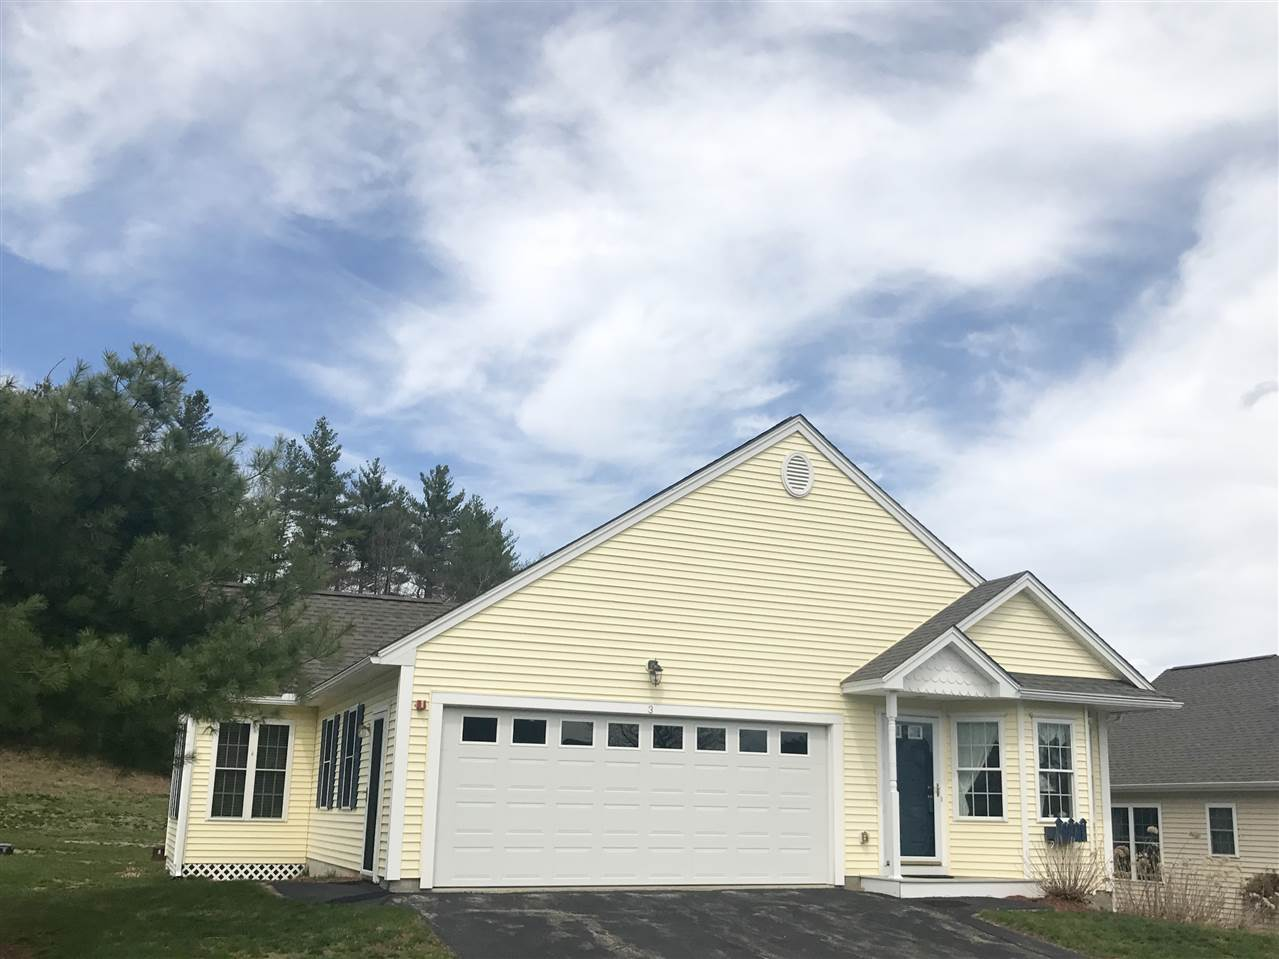 image of Litchfield NH Condo | sq.ft. 2588